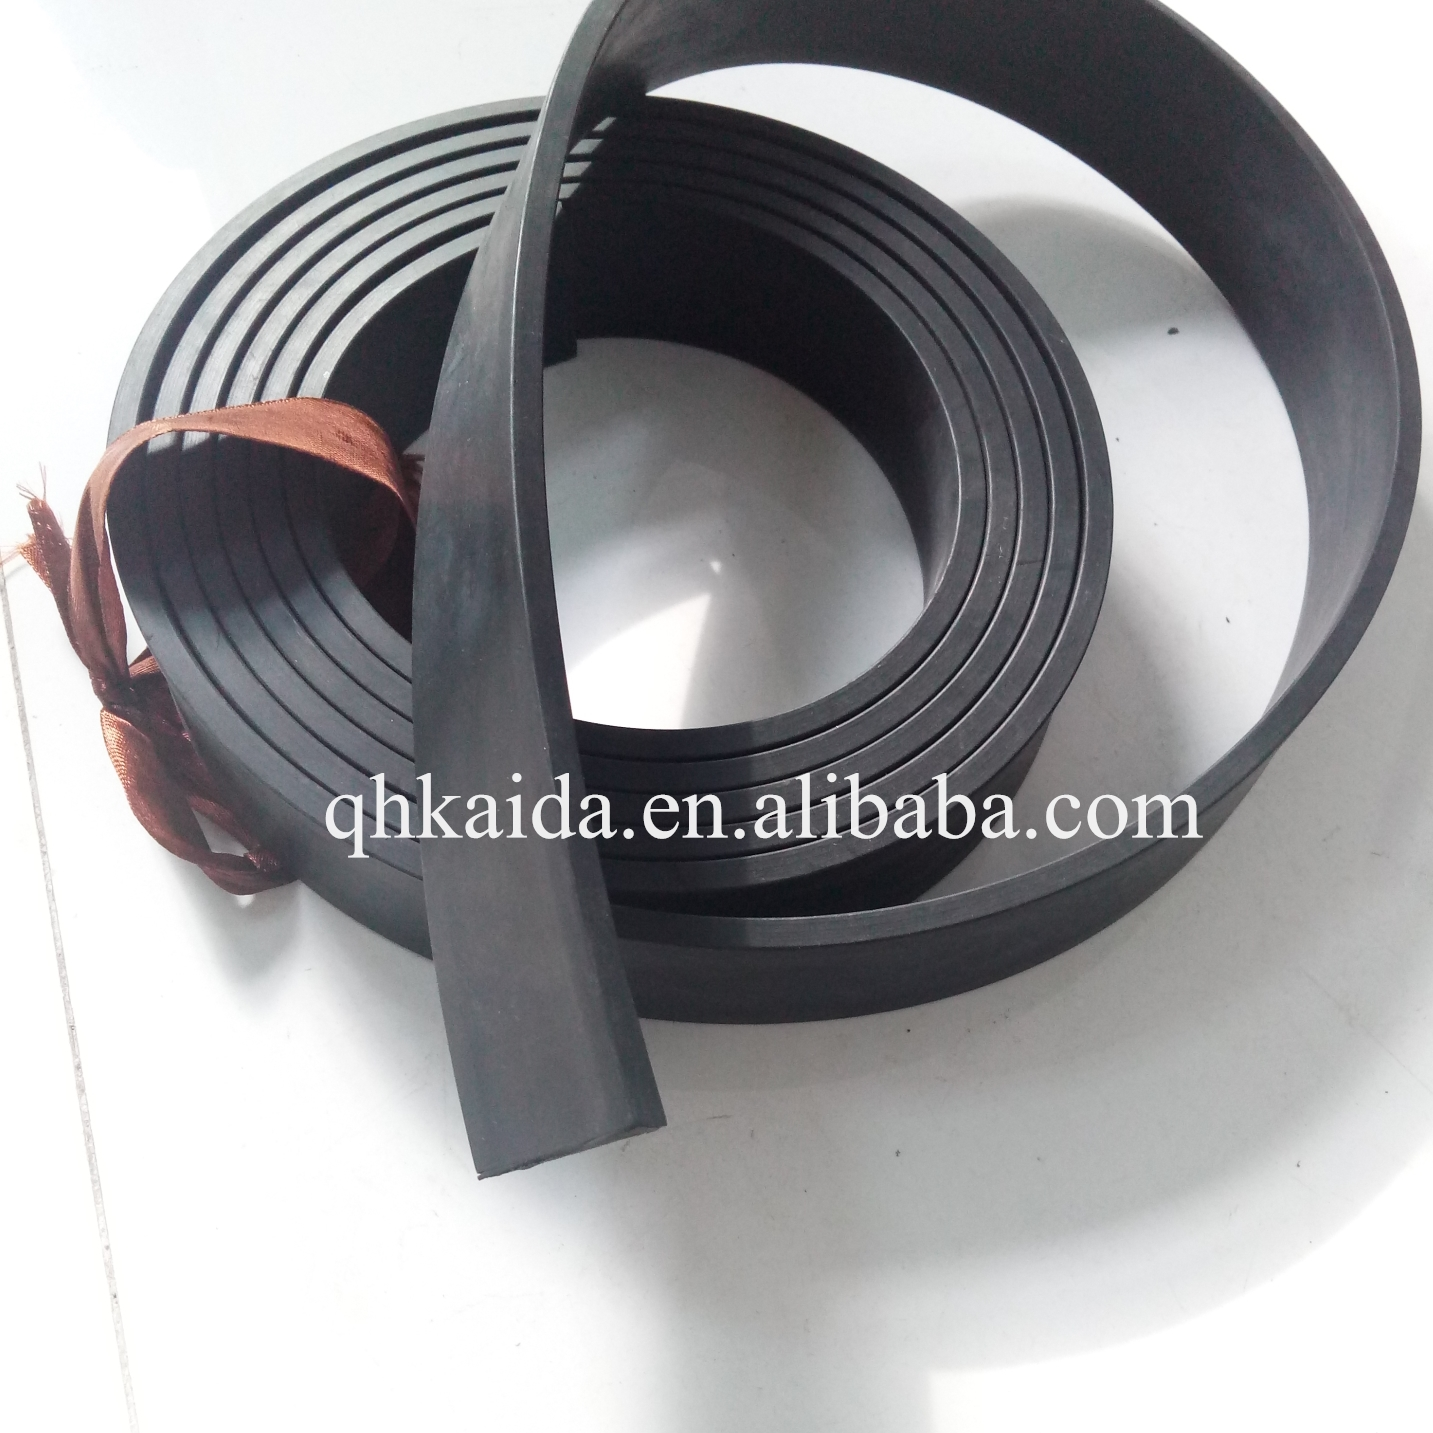 Rubber Seal Strip Flexible L Shaped Plastic Trim Edge Protection Rubber Seal Strip Buy Flexible L Shaped Rubber Seal Strip Trim Edge Protection Rubber Sealing